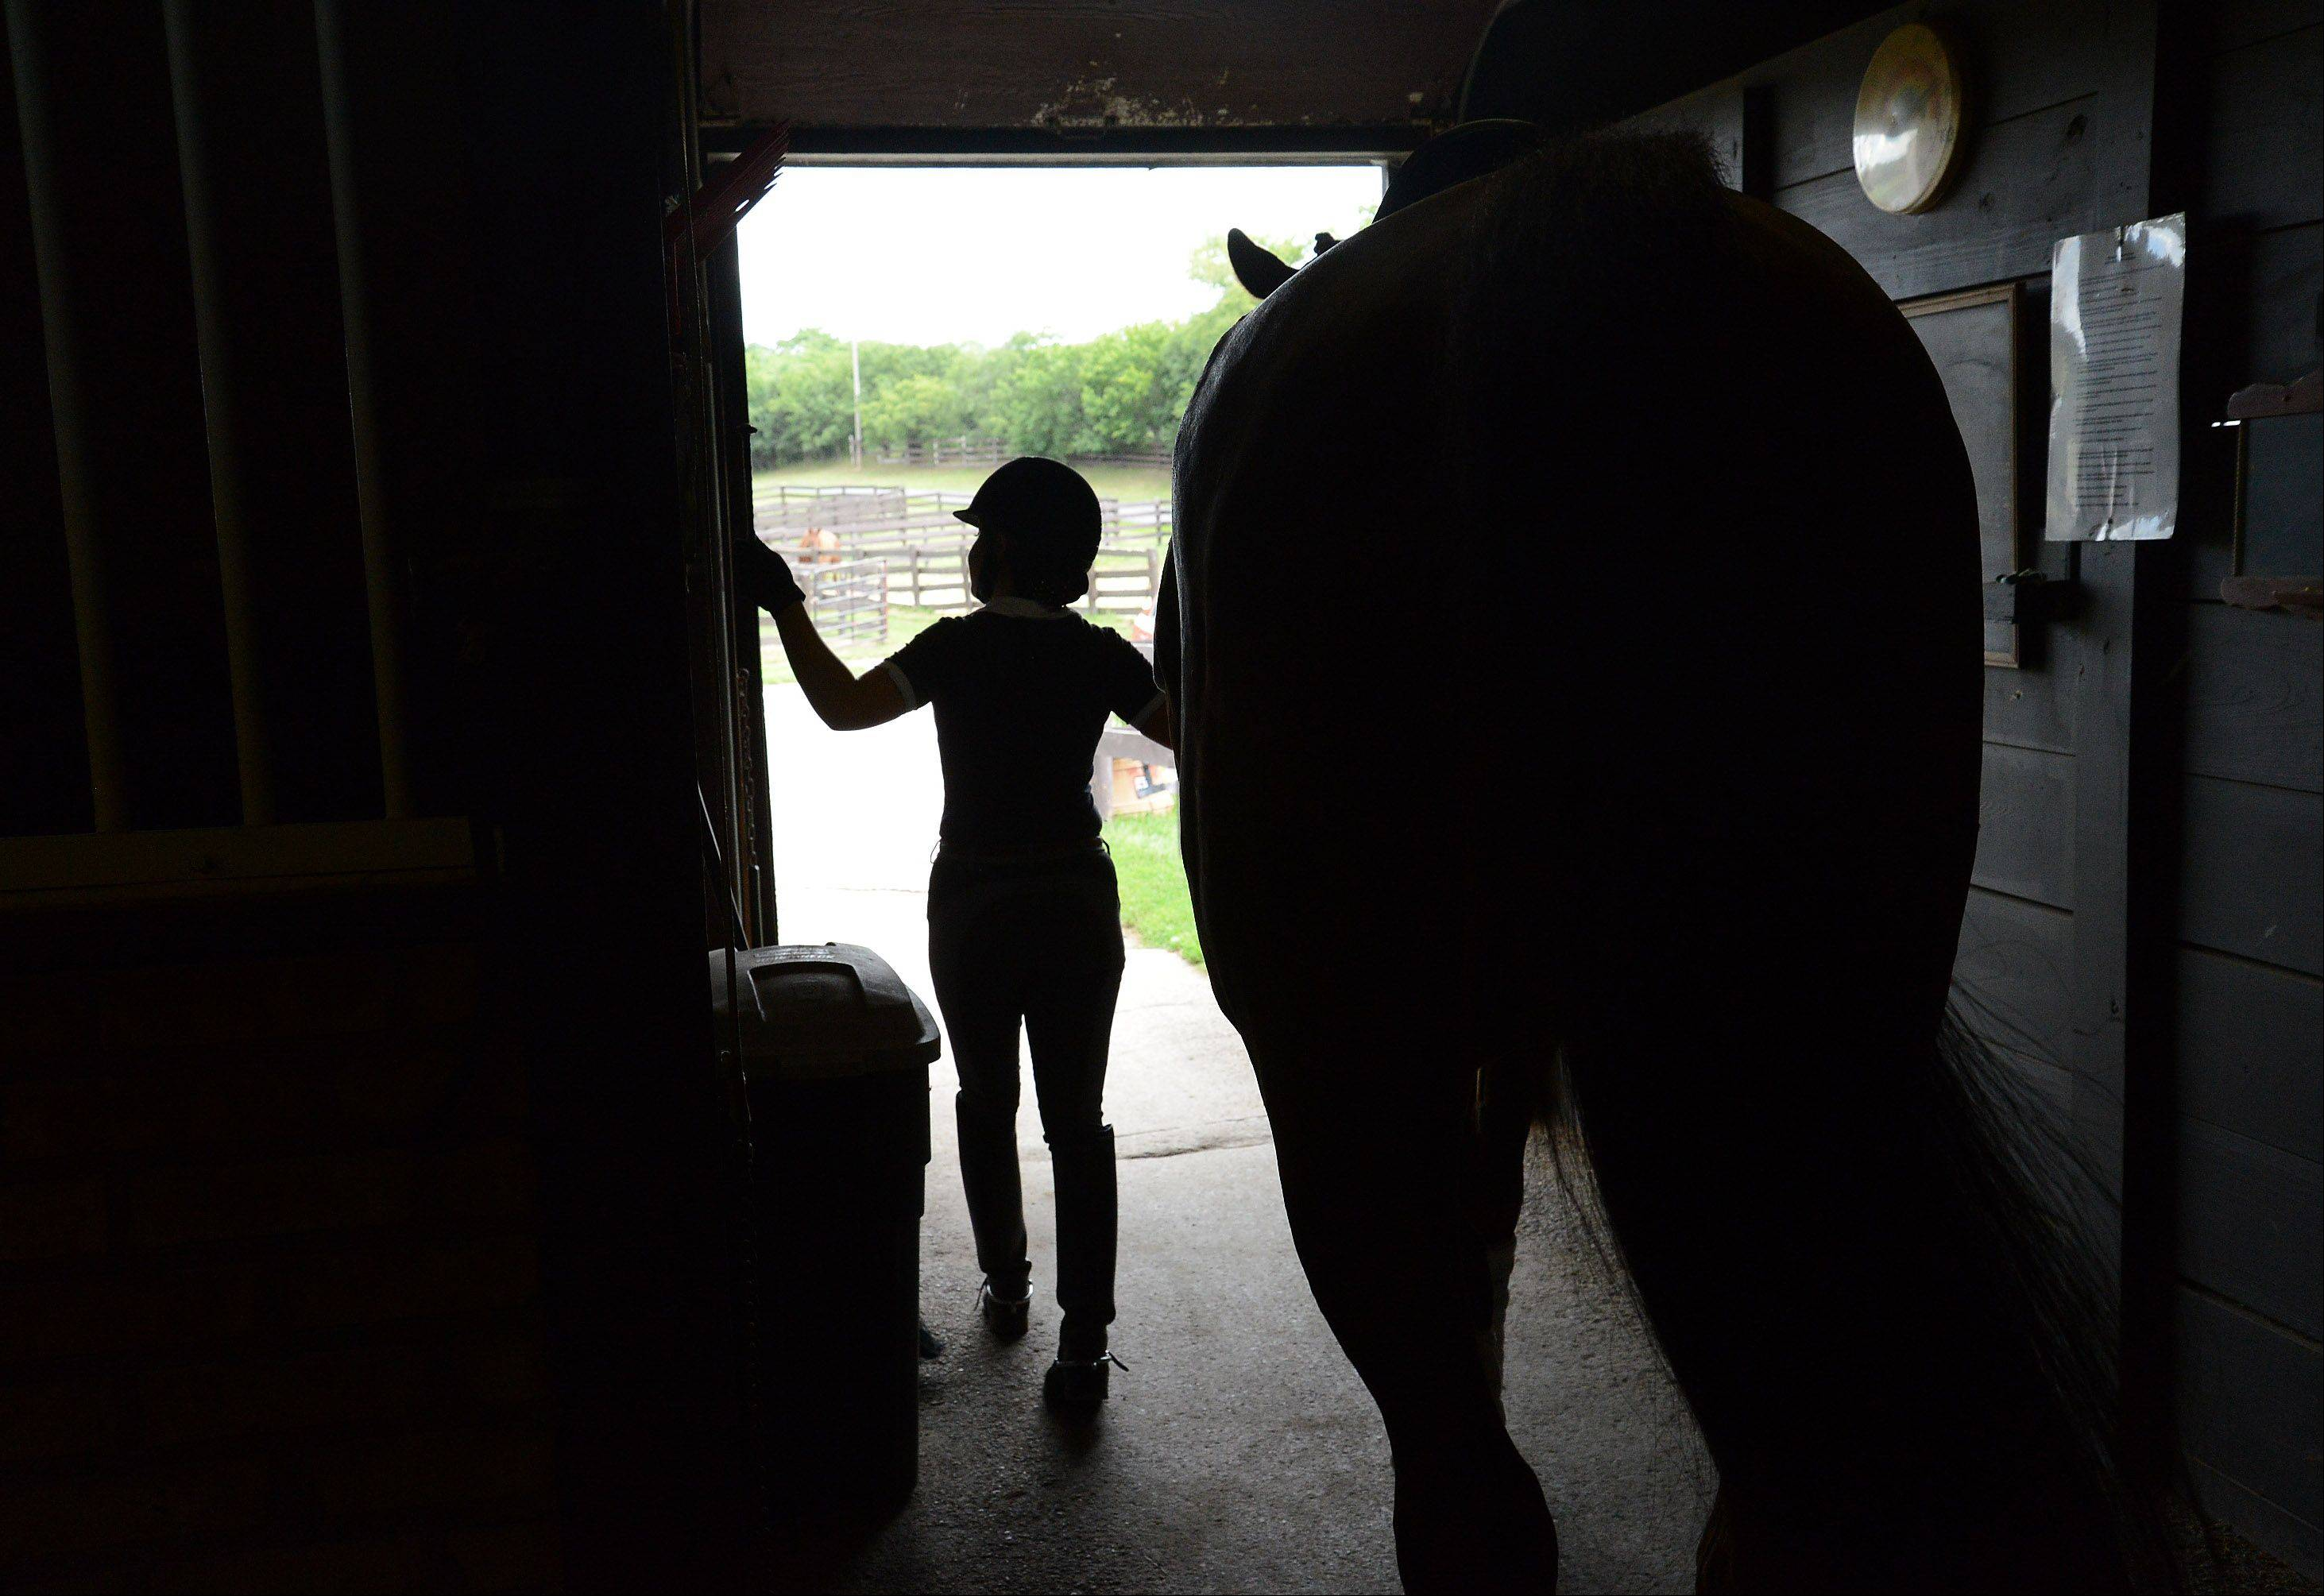 Barrington High School senior Rosie Julian-Simoes and horse Proteus head out of the stable for a training session at the Flying Dutchman Farm in Barrington Hills. Rosie is one of the country's top-ranked dressage competitors in her division and hopes to eventually compete internationally.